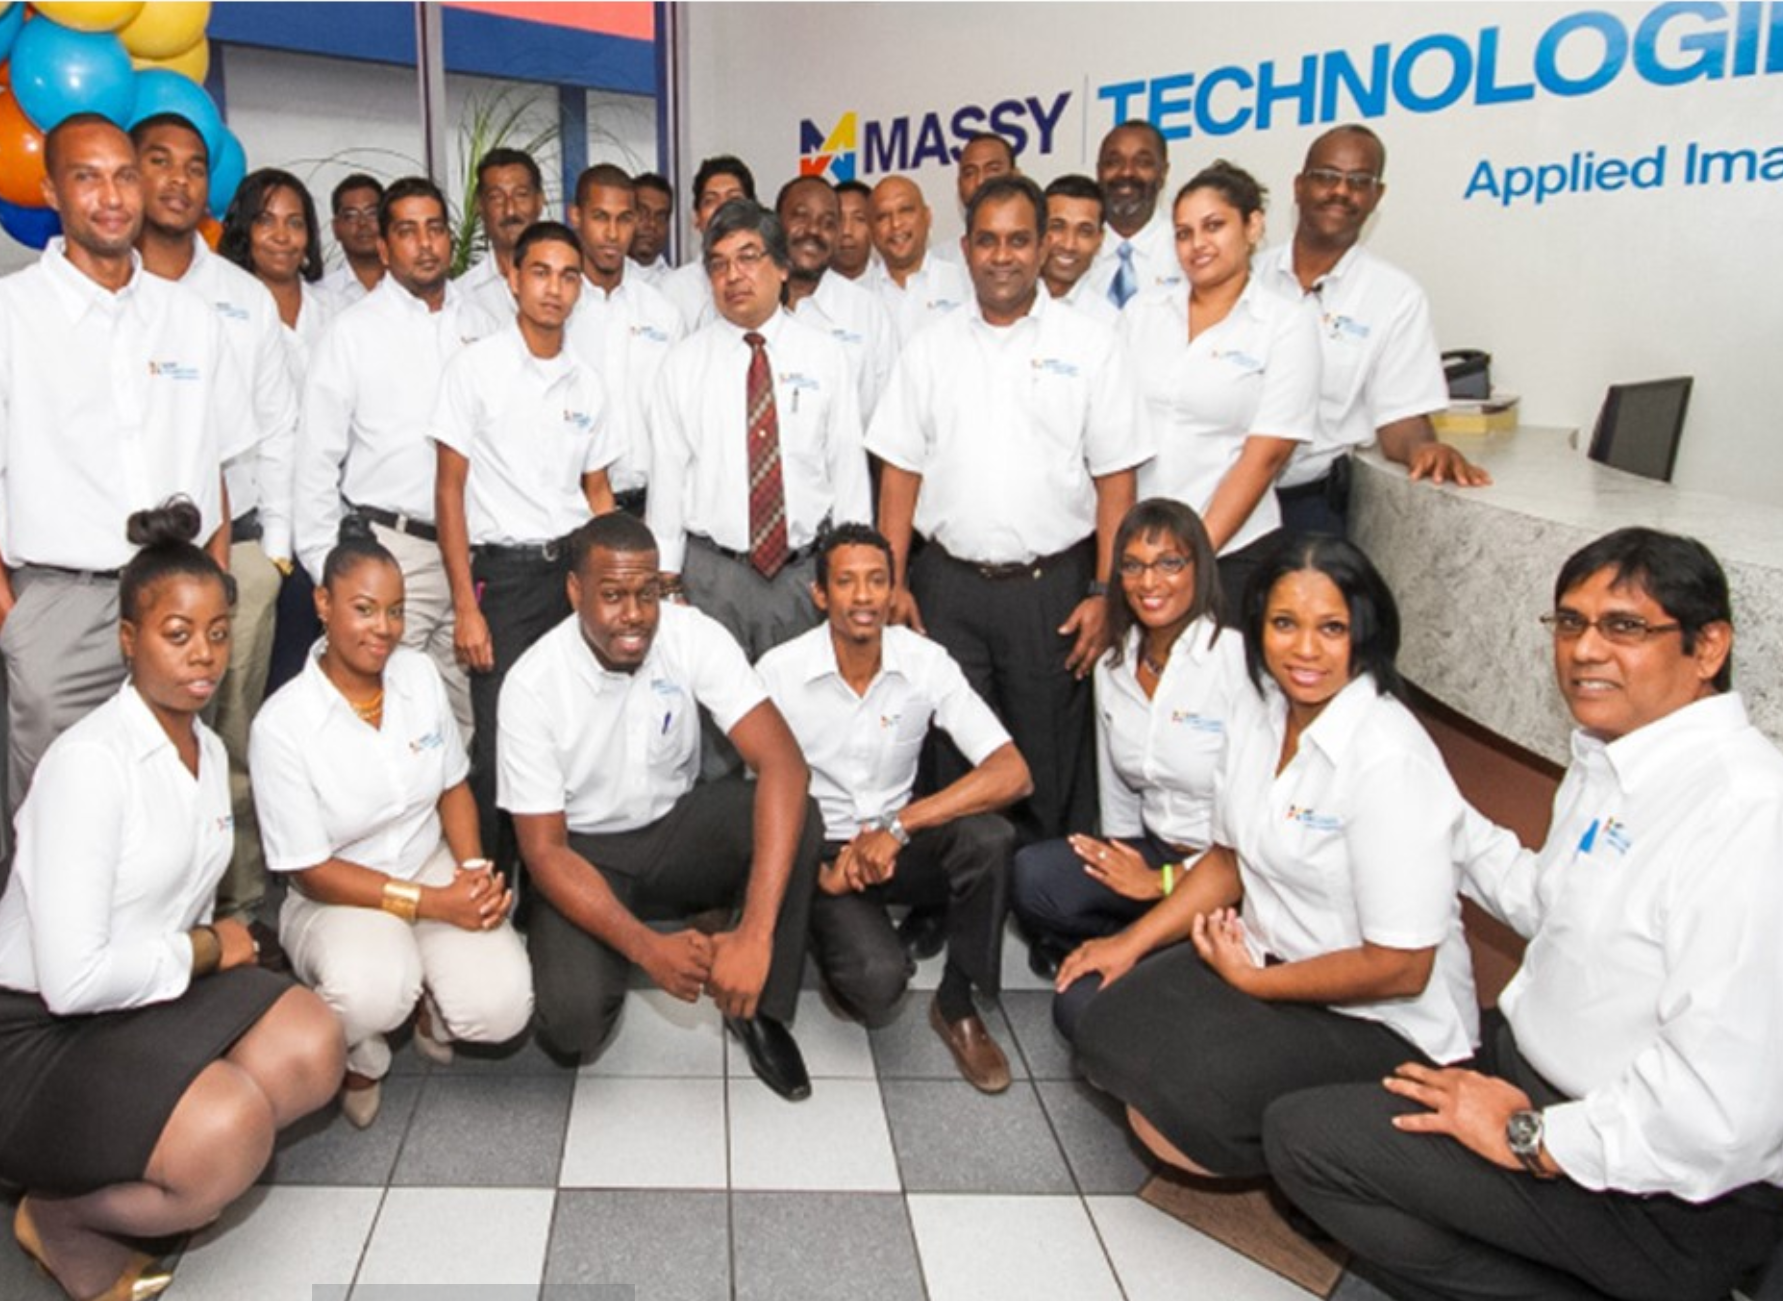 A group photo of Massy Technology employees, back row standing, front row kneeling.